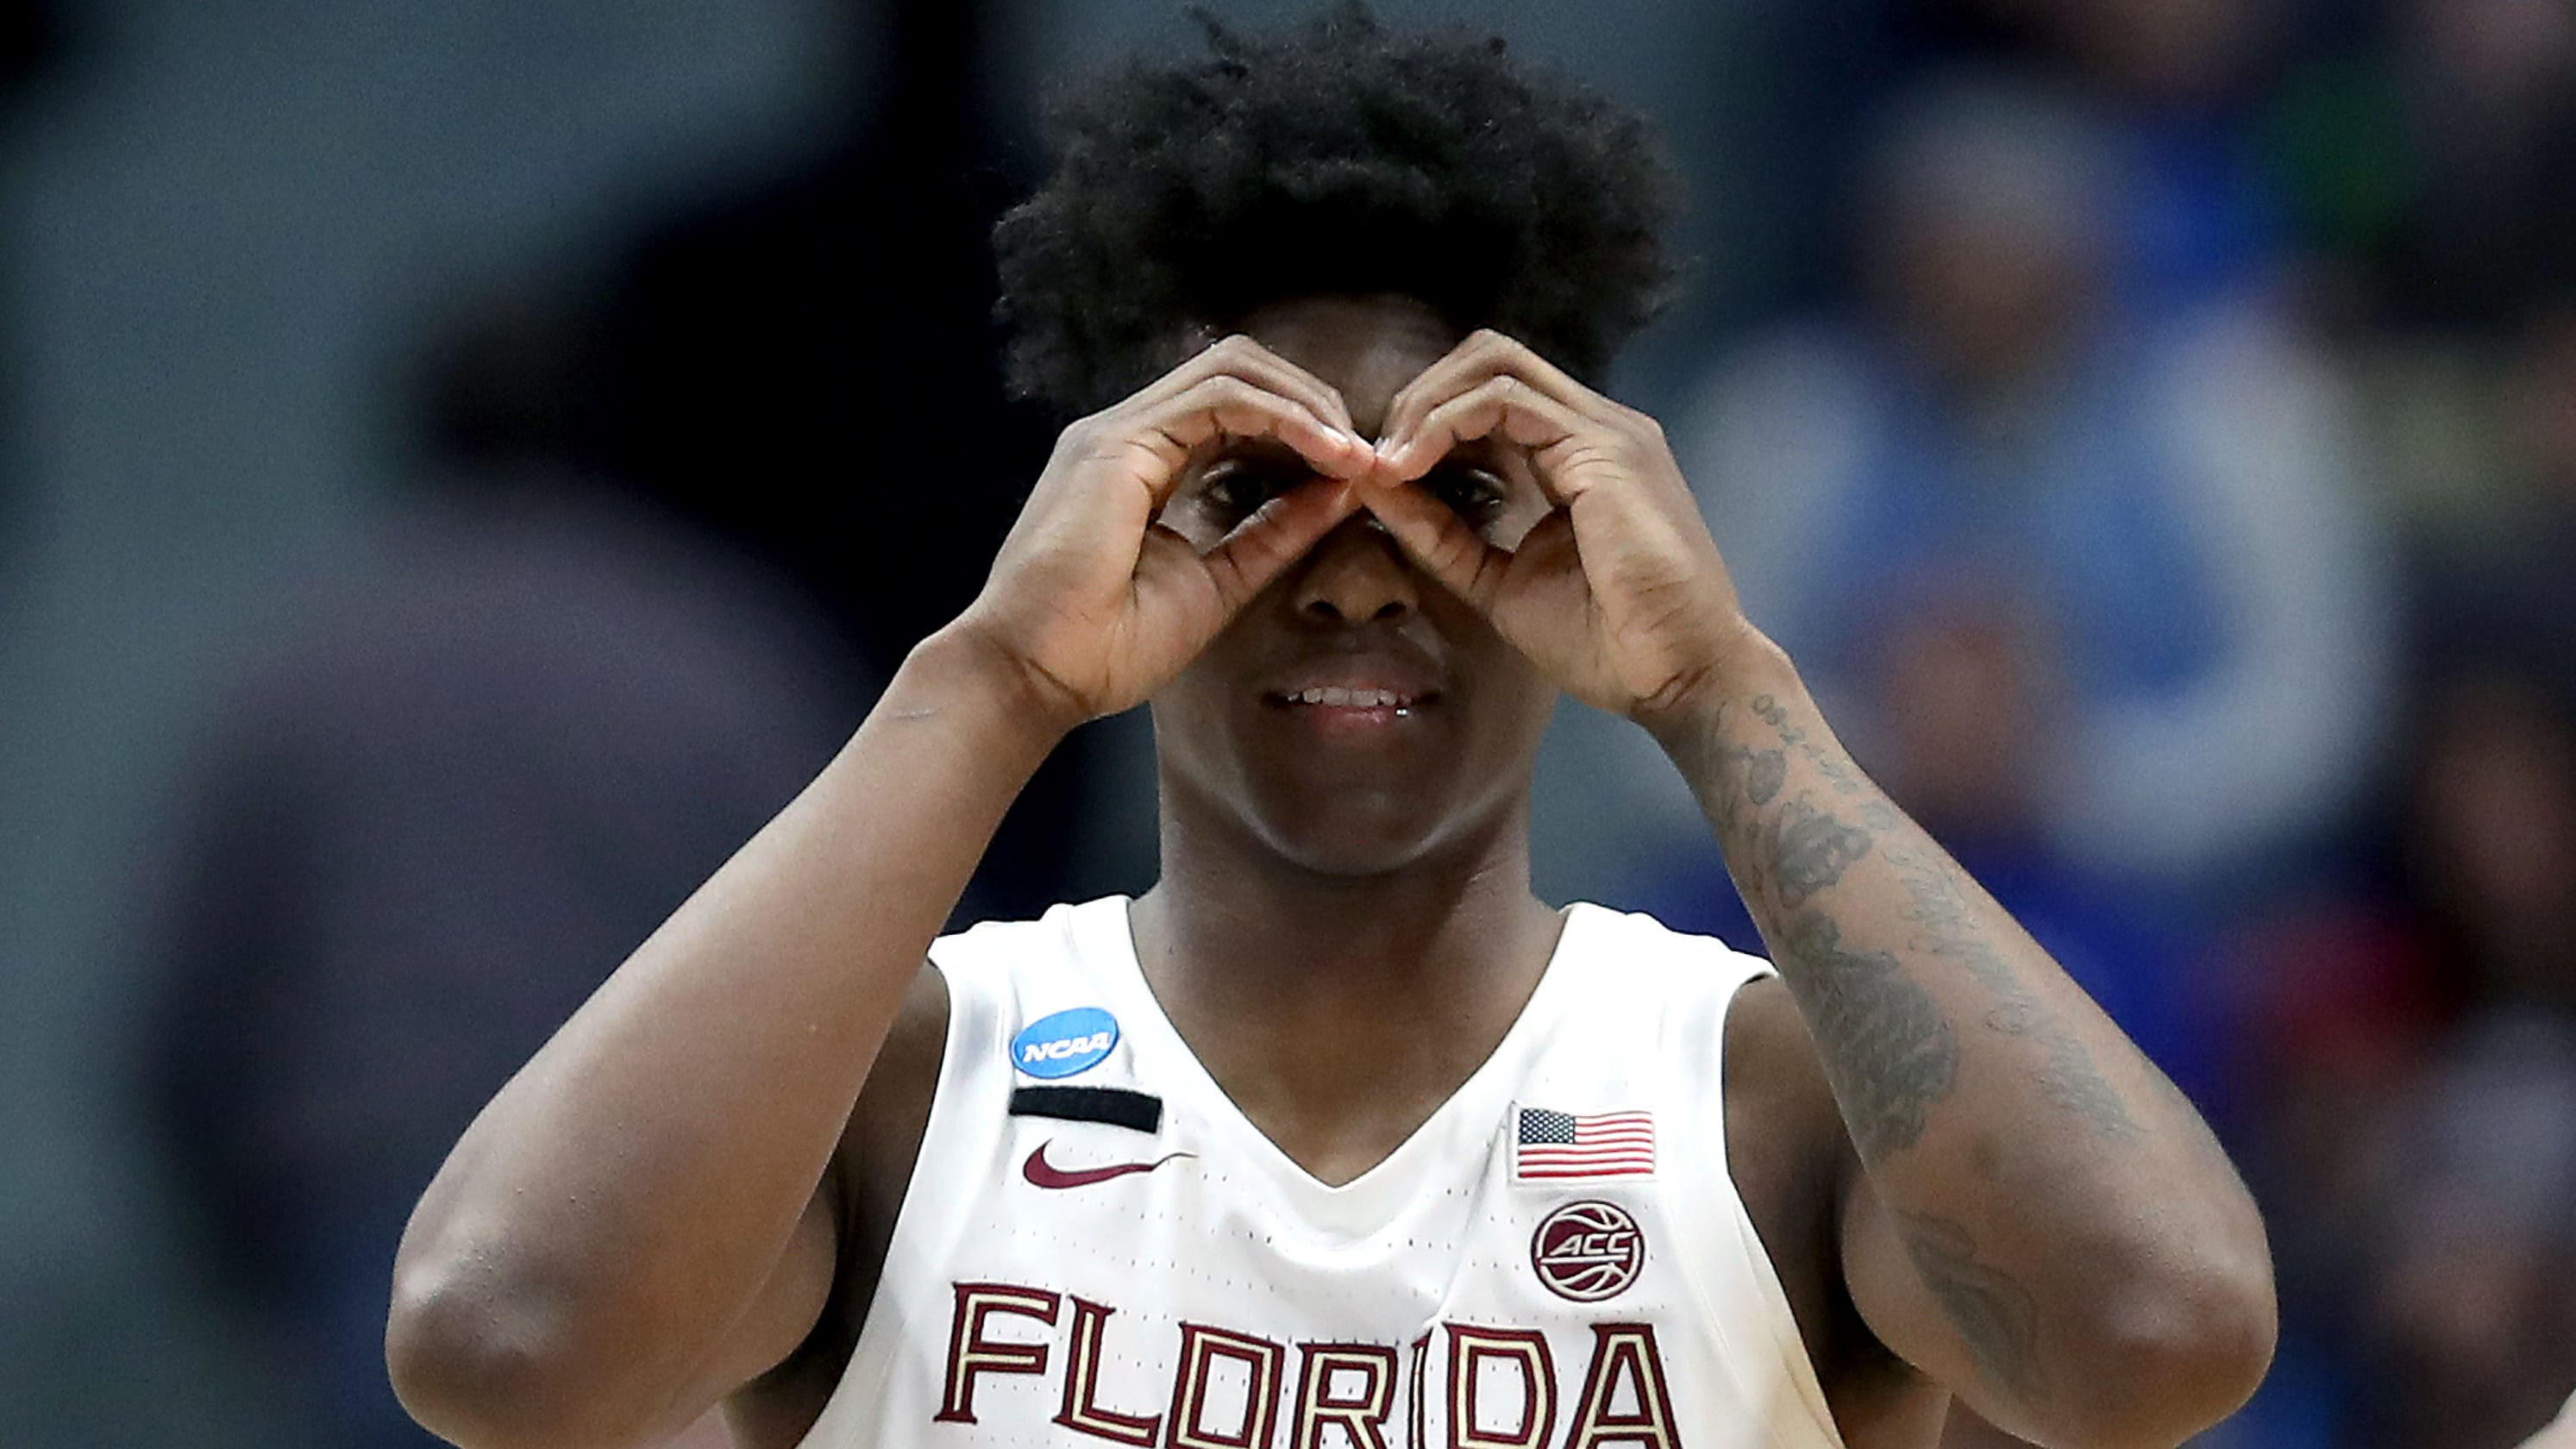 March Madness: 6 key takeaways from Saturday's second round NCAA tournament games